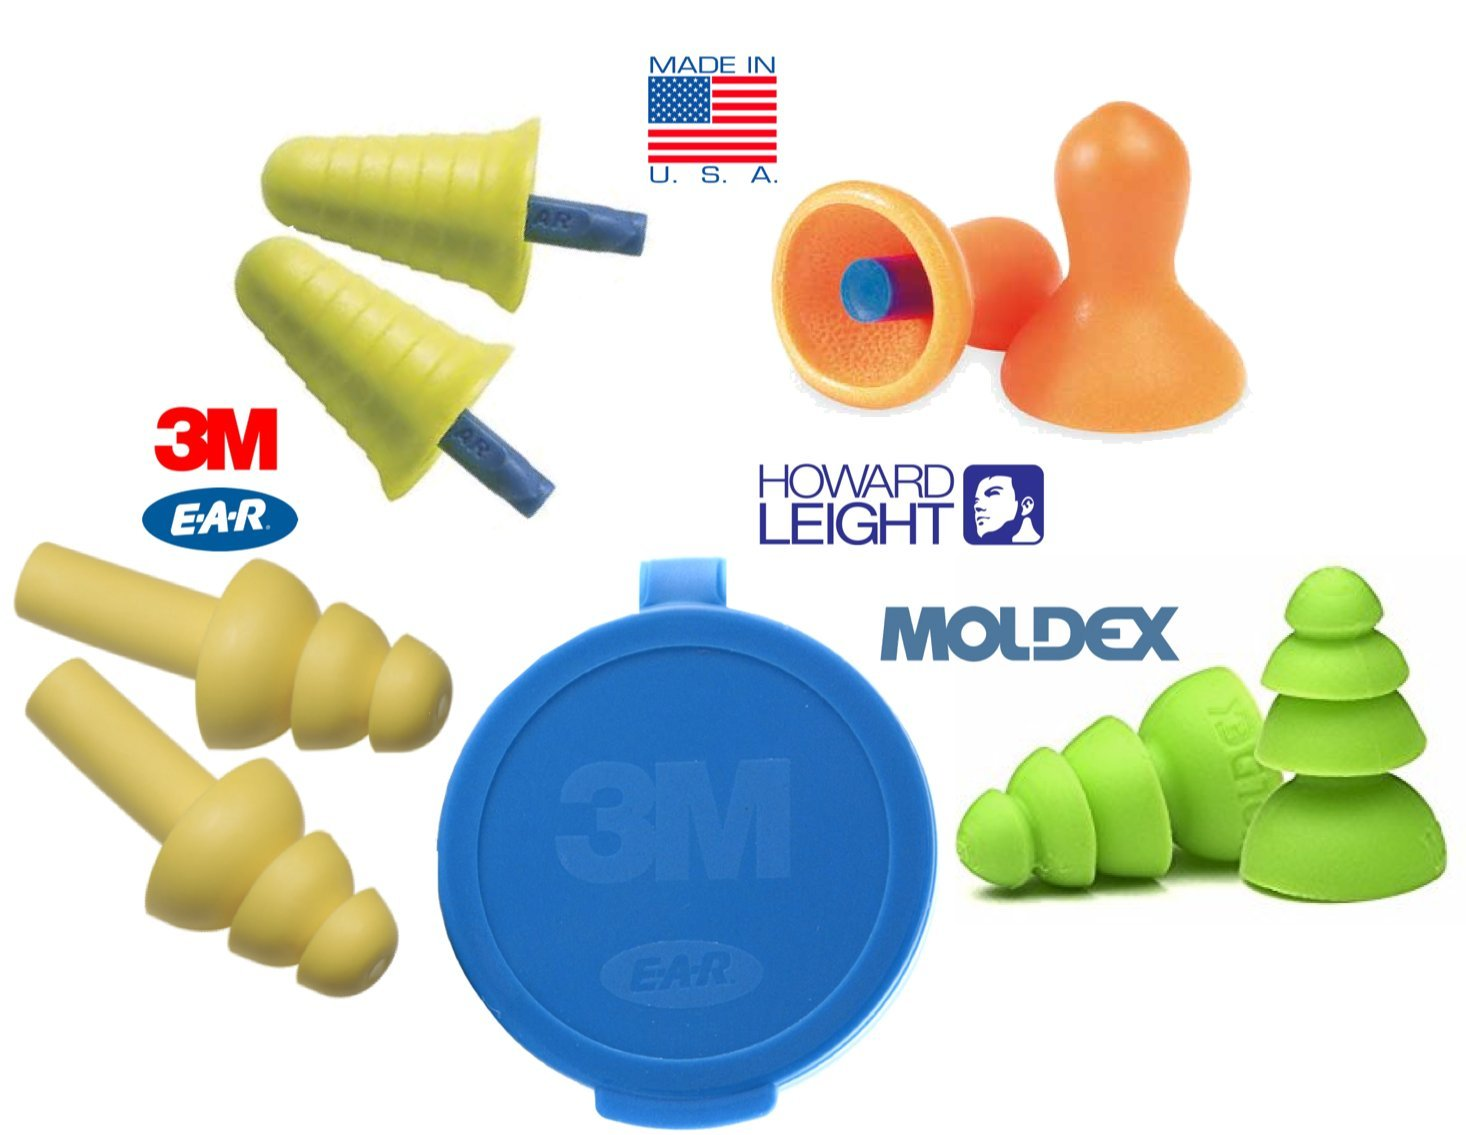 Noise Cancelling Reusable Ear Plugs, best earplugs, sleeping swimming musicians sound blocking concerts shooting swim sleep silicone best sound reduction, best ear plugs